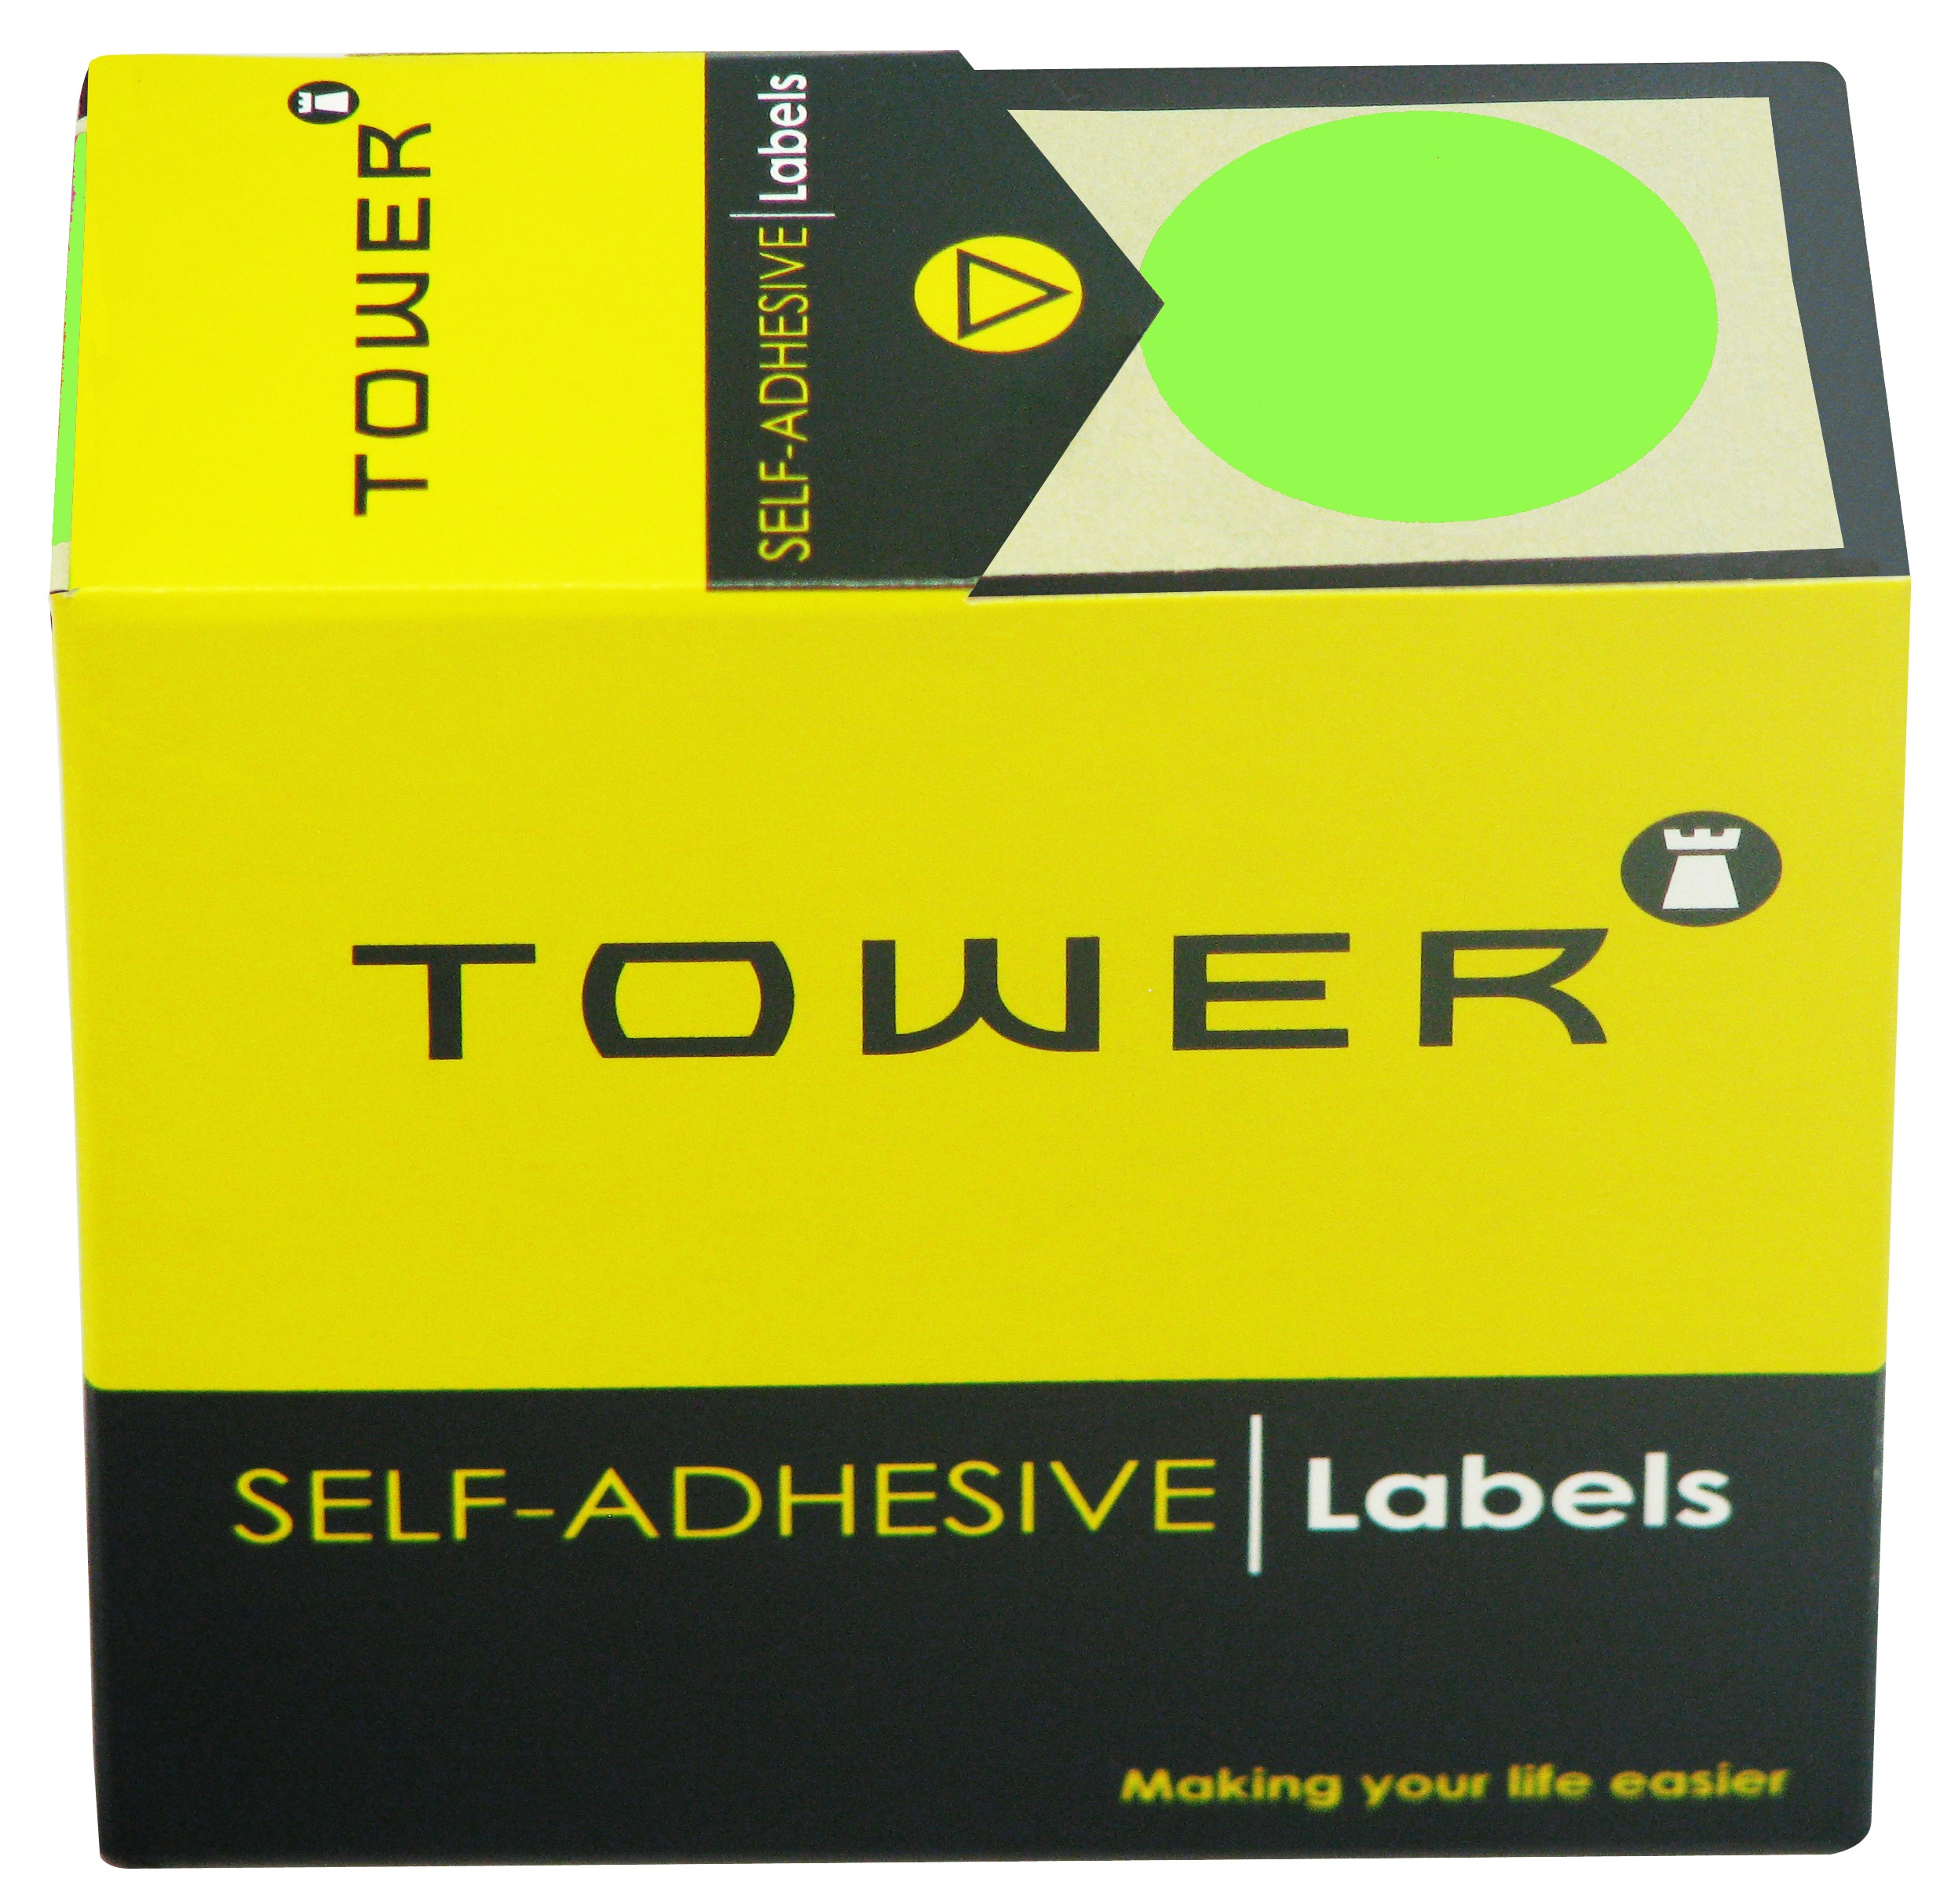 Tower C32 Label Flu Green